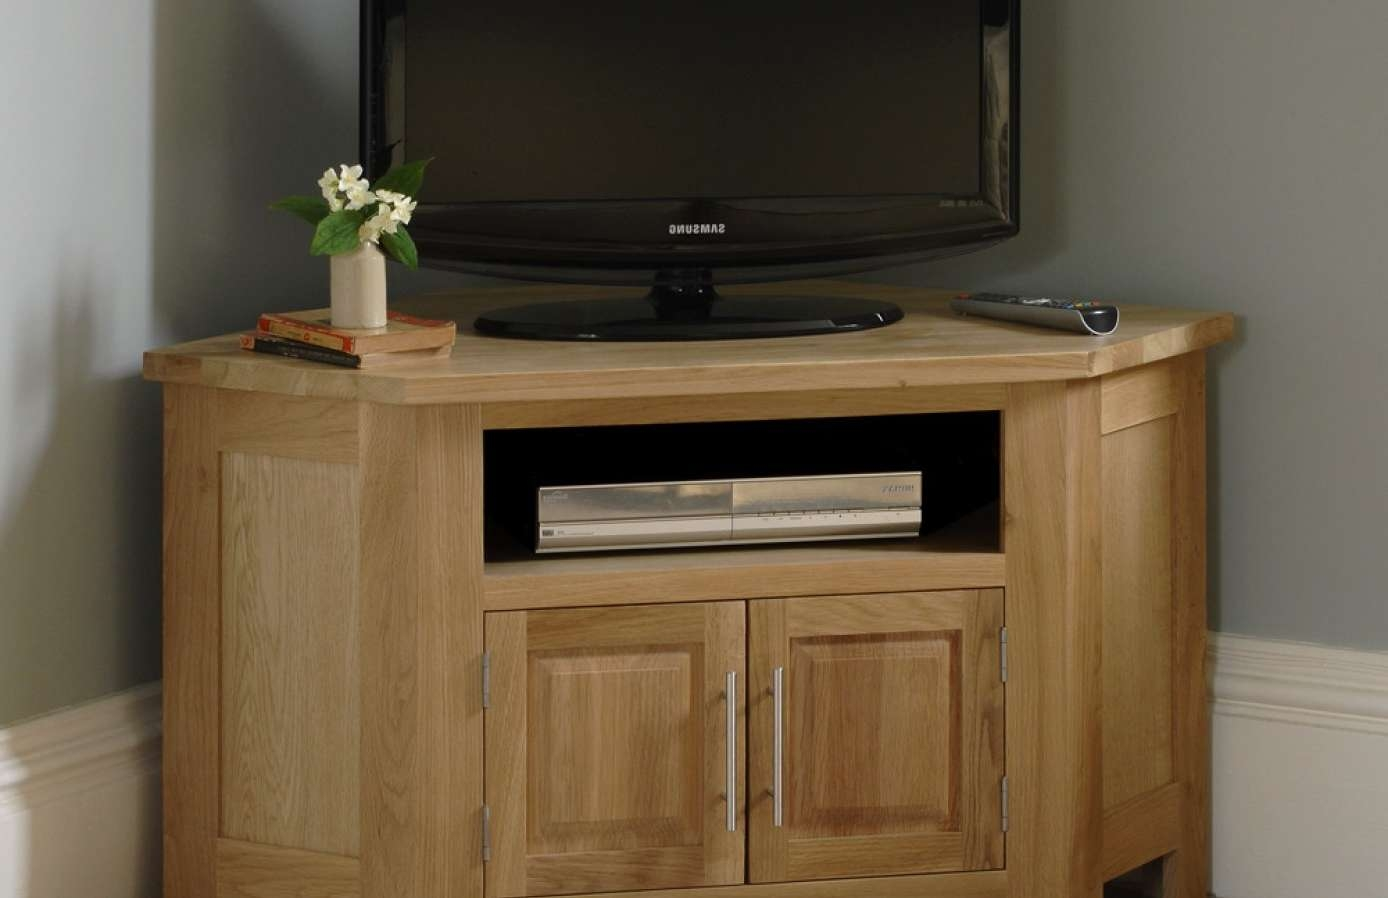 Tv : Wonderful Wooden Corner Tv Cabinets Uk Delicate Dark Oak Throughout Wooden Corner Tv Cabinets (View 15 of 20)